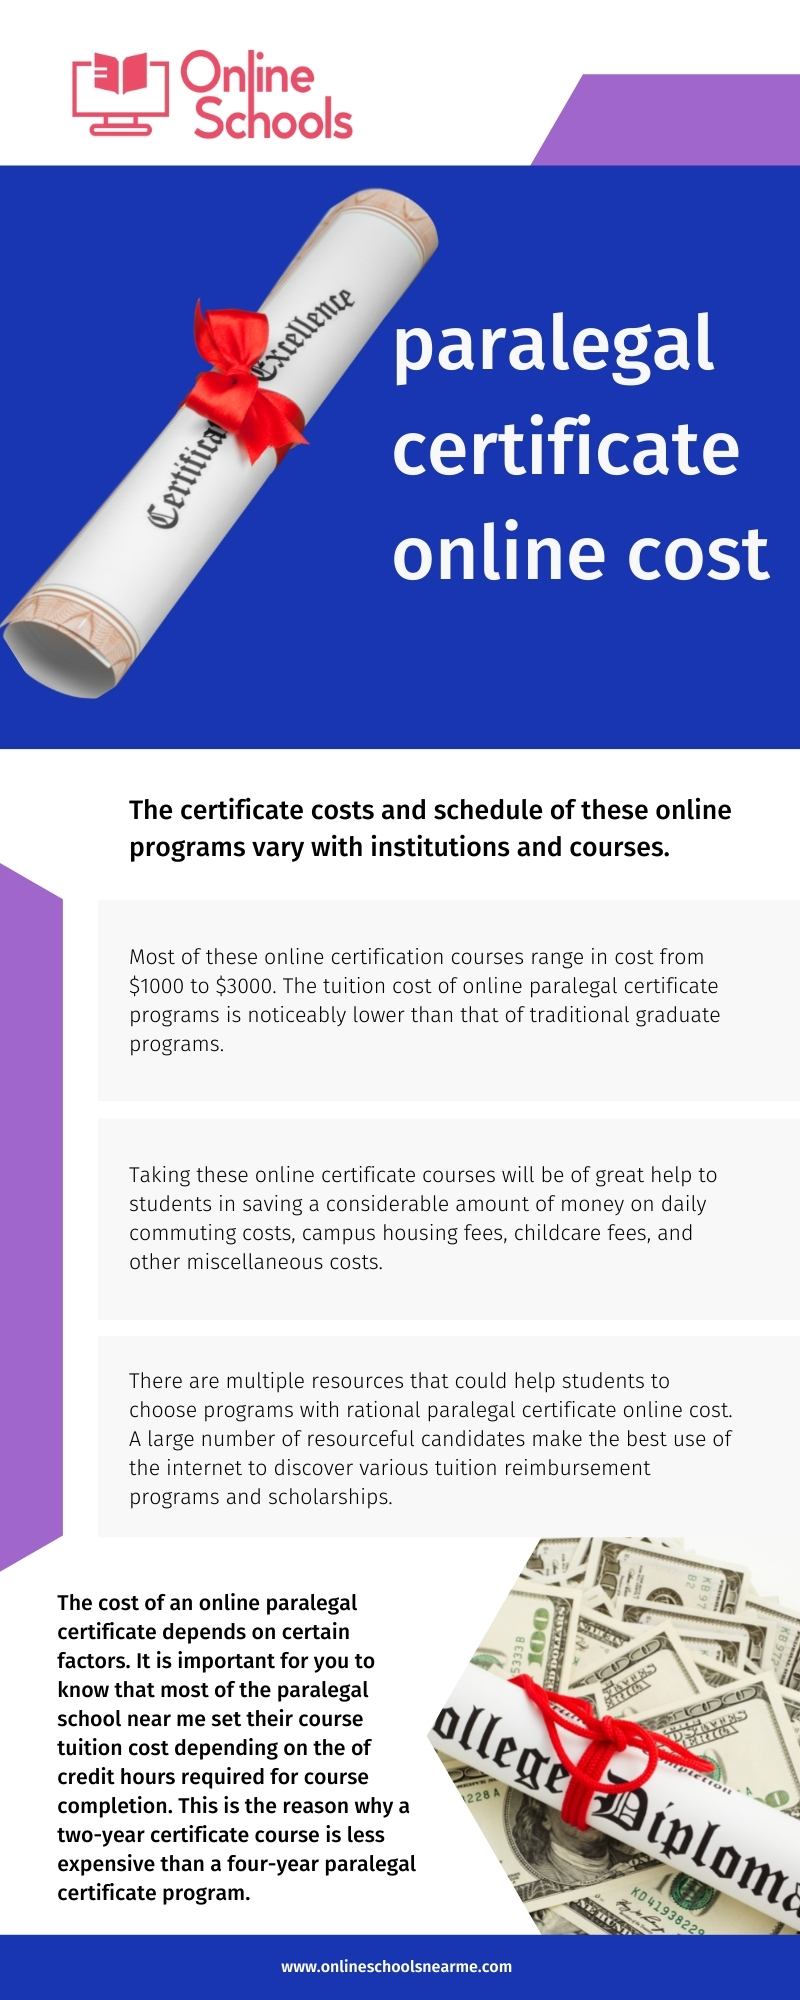 Paralegal certificate online cost